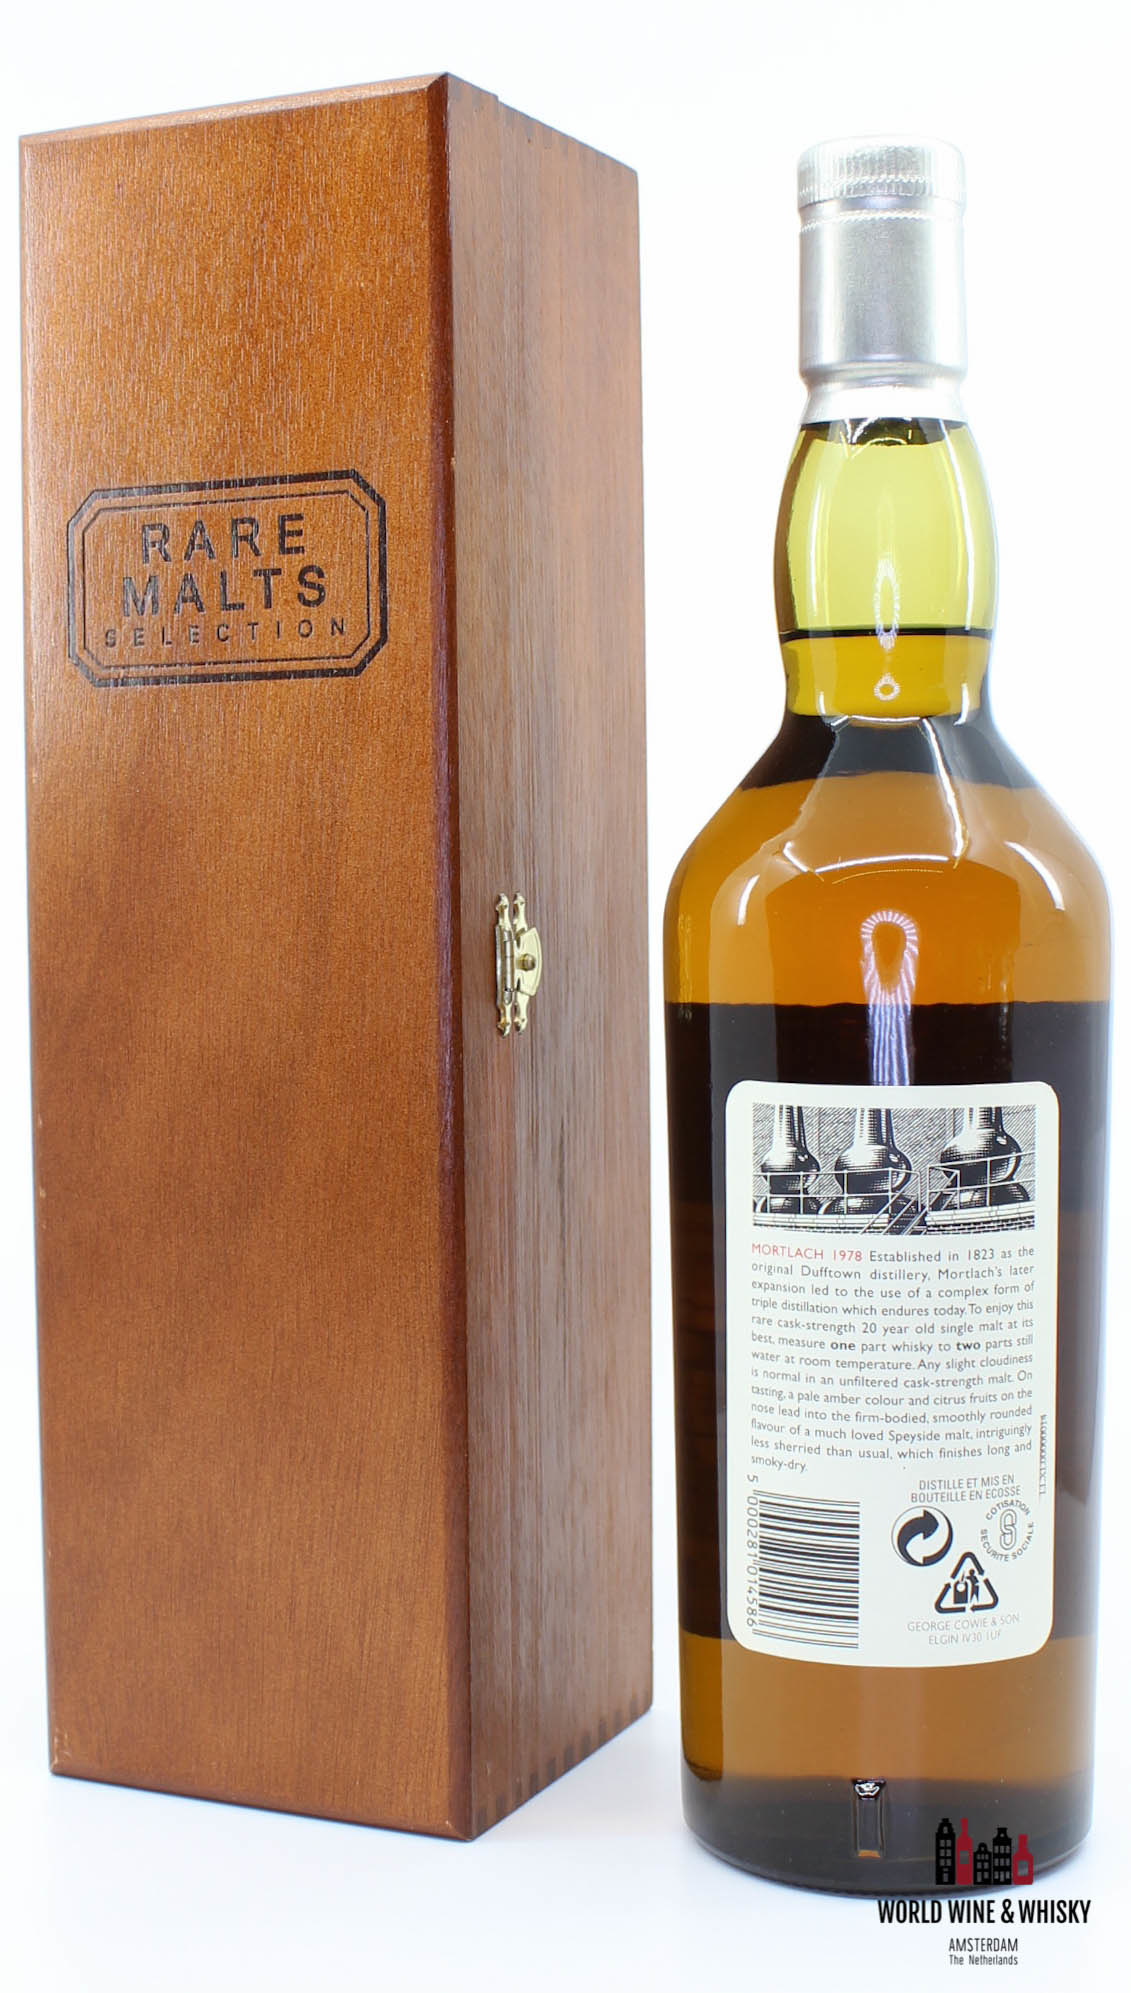 Mortlach Mortlach 20 Years Old 1978 1998 Rare Malts Selection 62.2% (in wooden box)